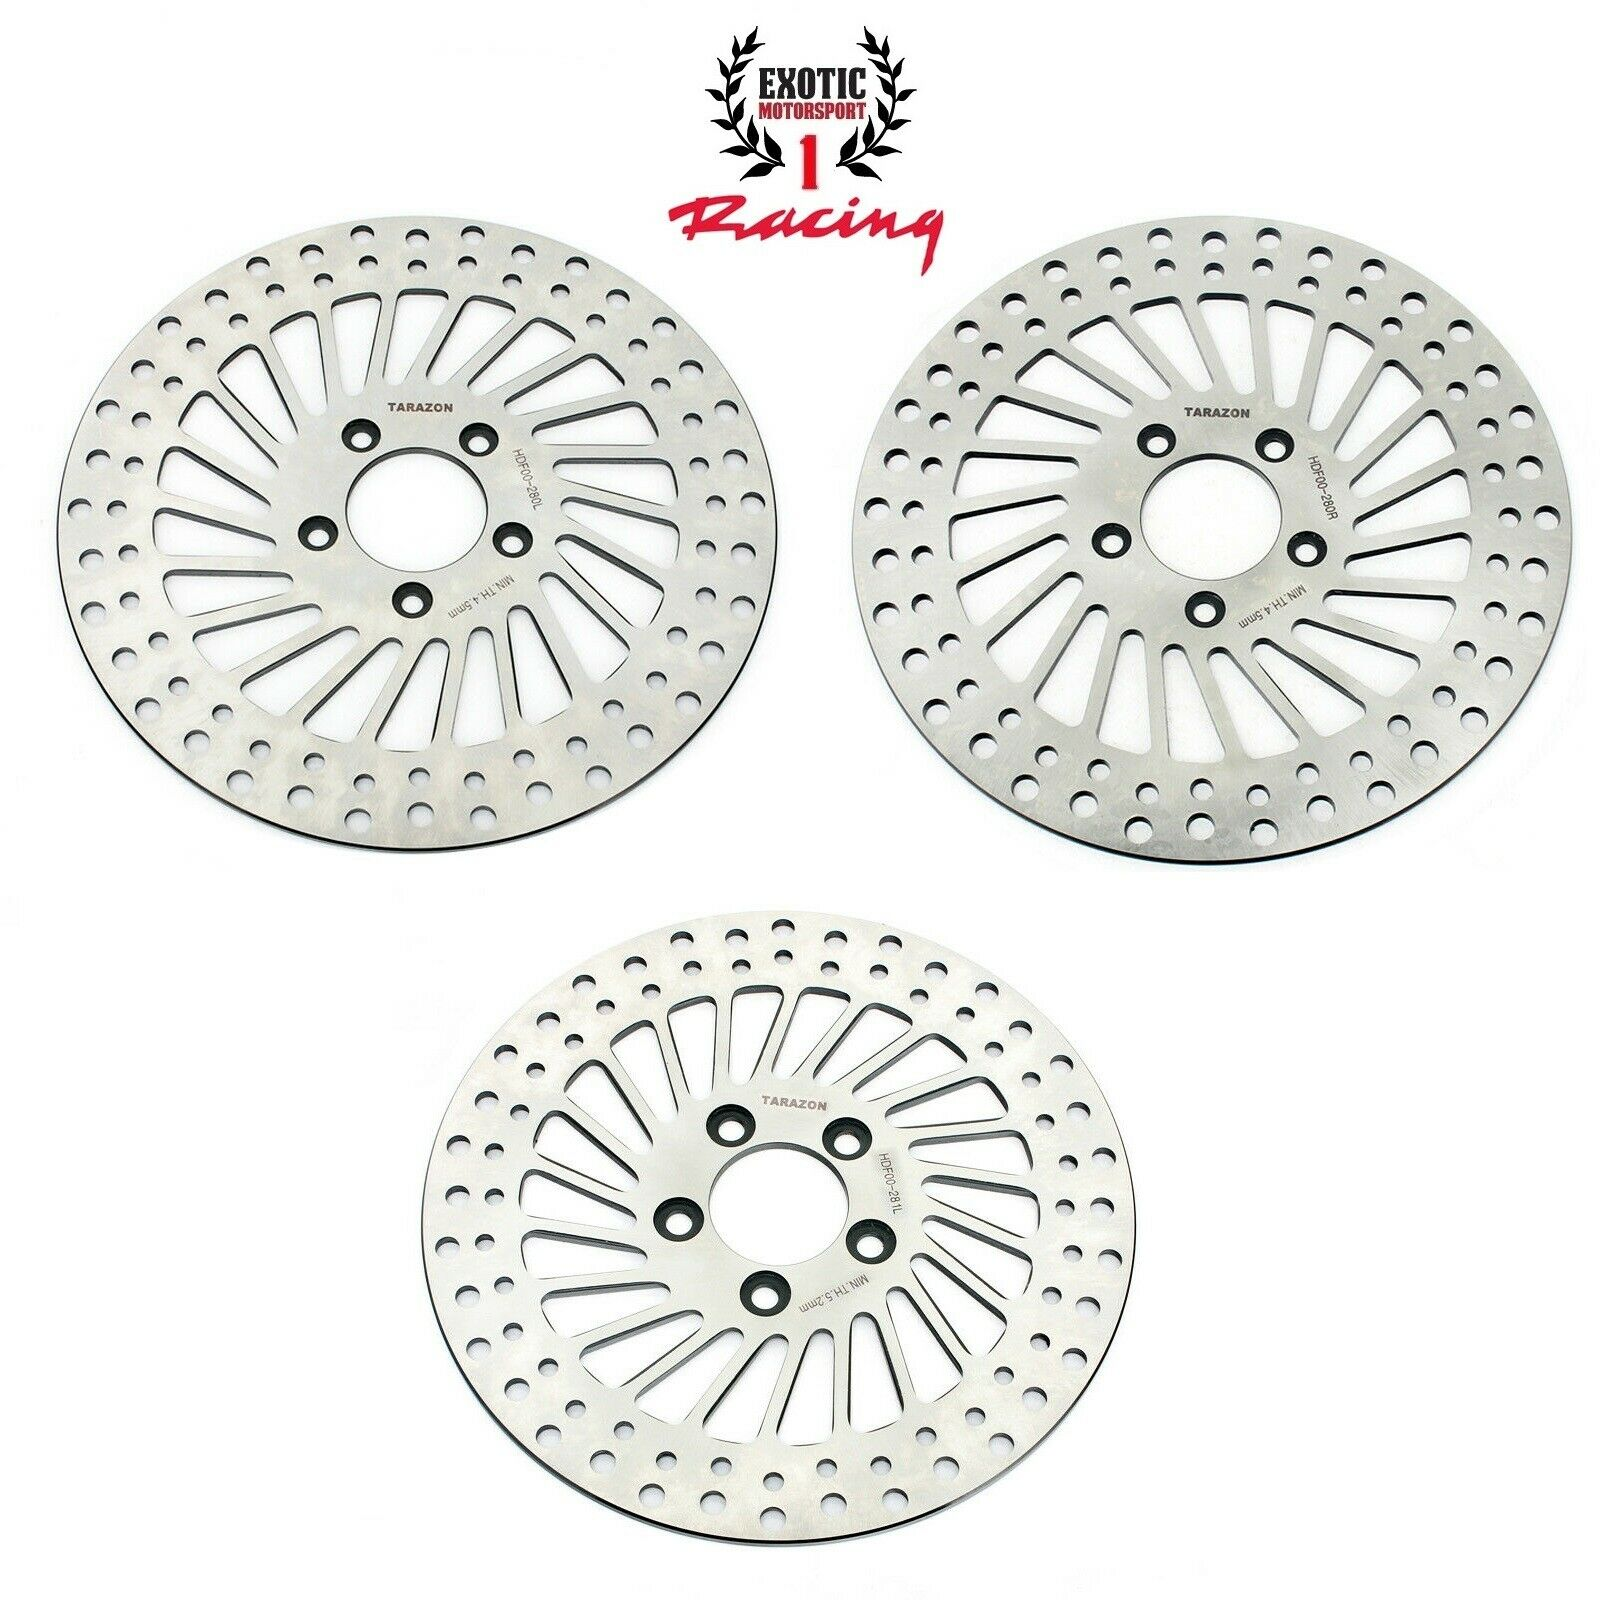 TARAZON 11.5 Rear Brake Disc Rotor for Harley Touring Electra Glide Standard Classic Ultra Classic Electra Glide